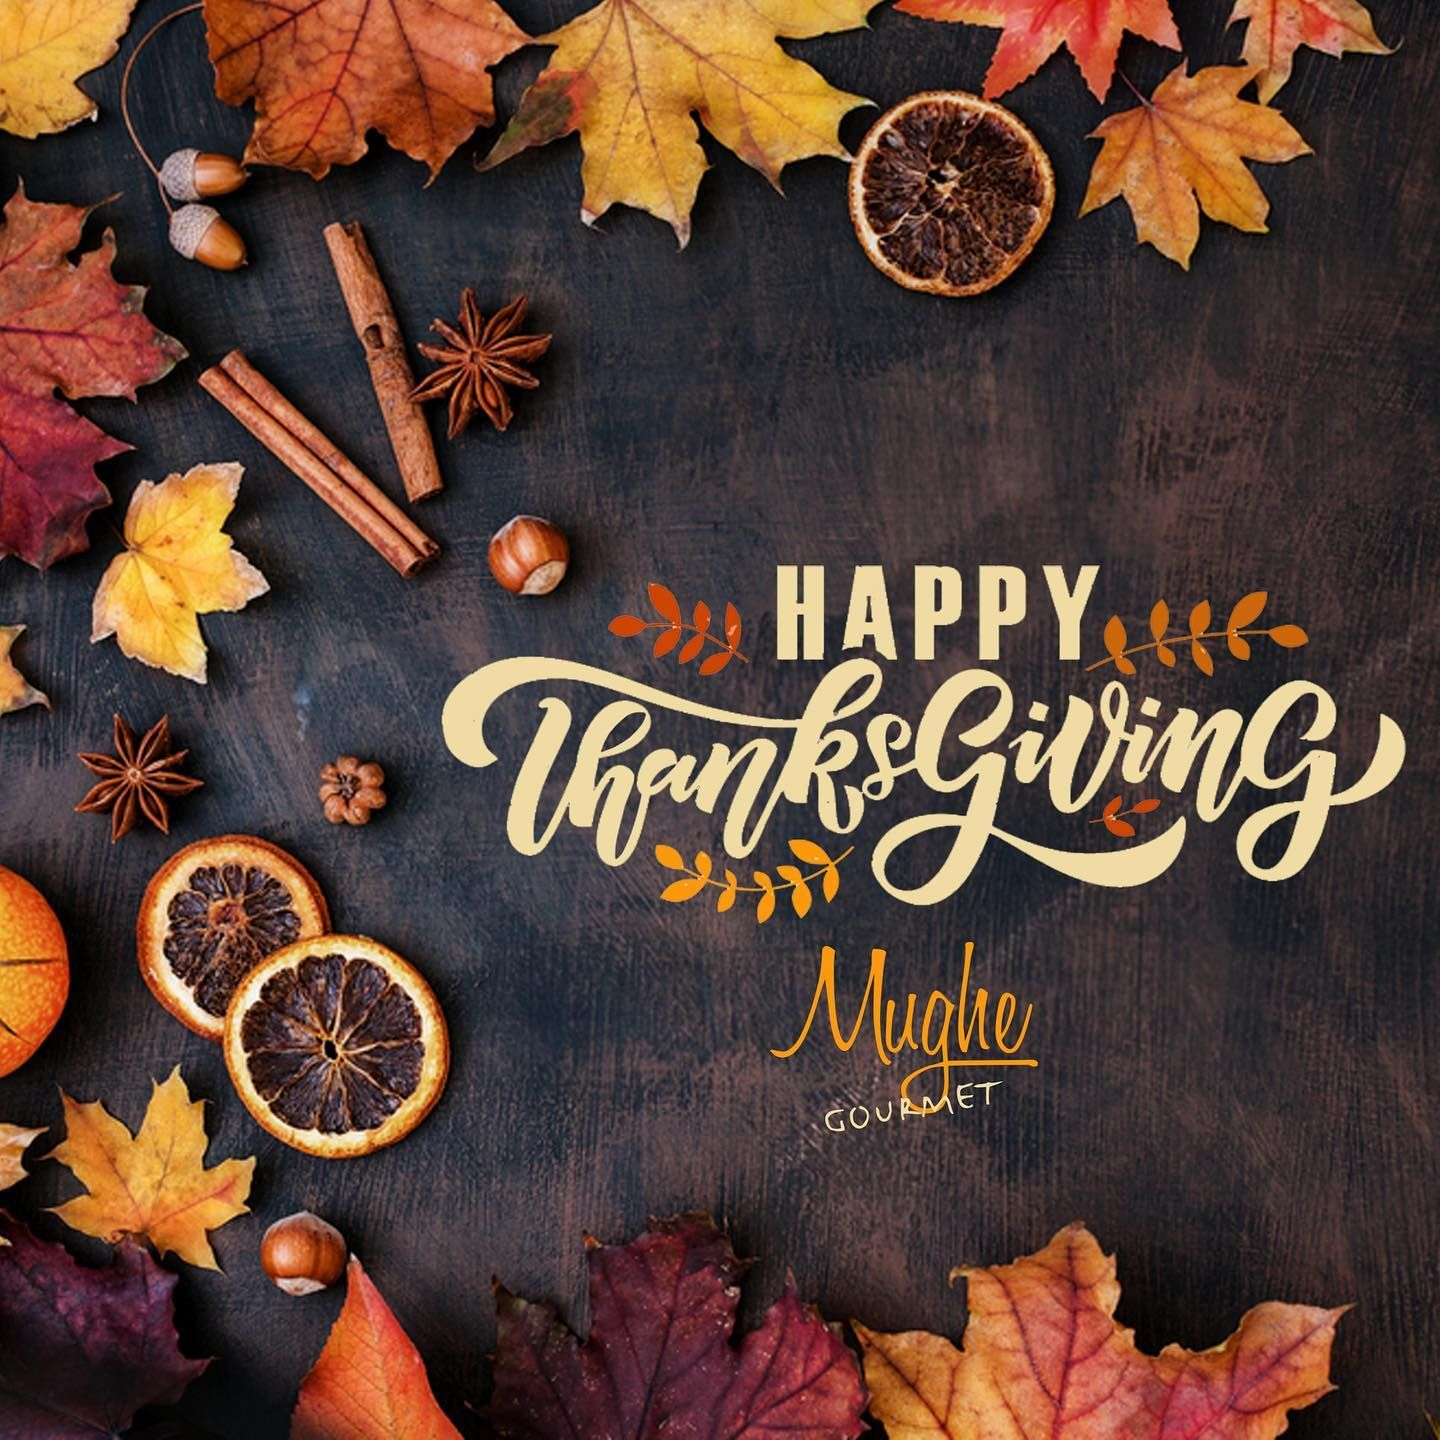 Happy Thanksgiving We Hope Everyone Enjoys Today With Family Friends And Food Hap In 2020 Thanksgiving Eve Happy Thanksgiving Thanksgiving Clapback